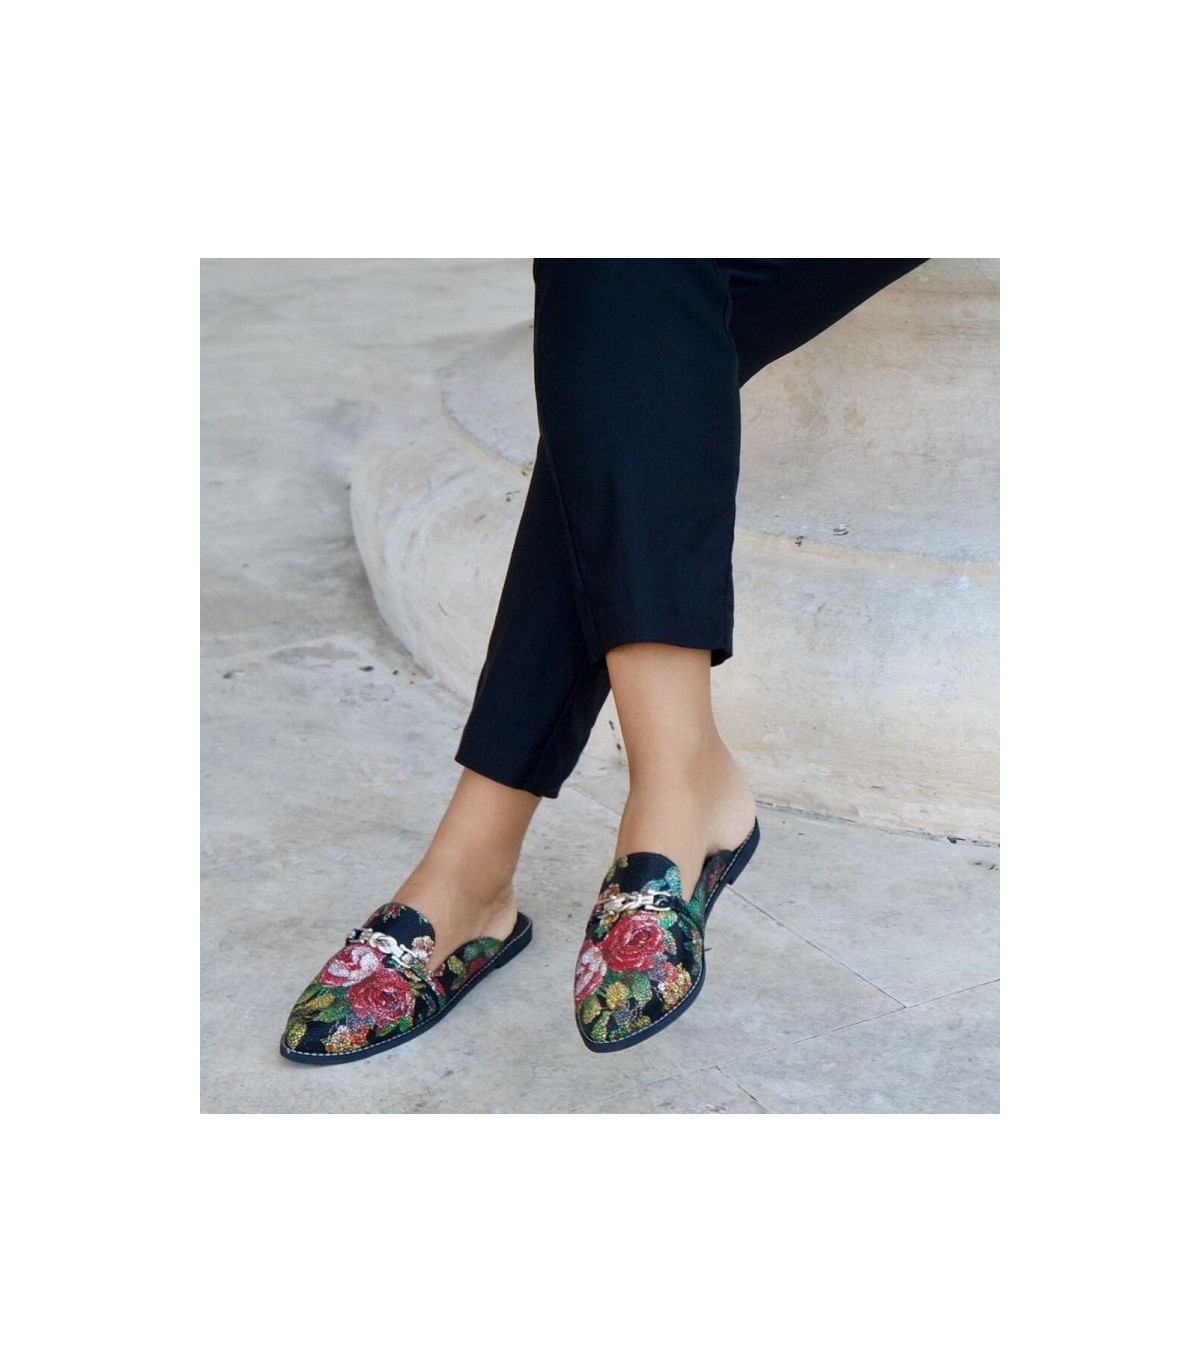 fc0a37c06a8 Wild Roses Mules. Silver Baroque Shoes